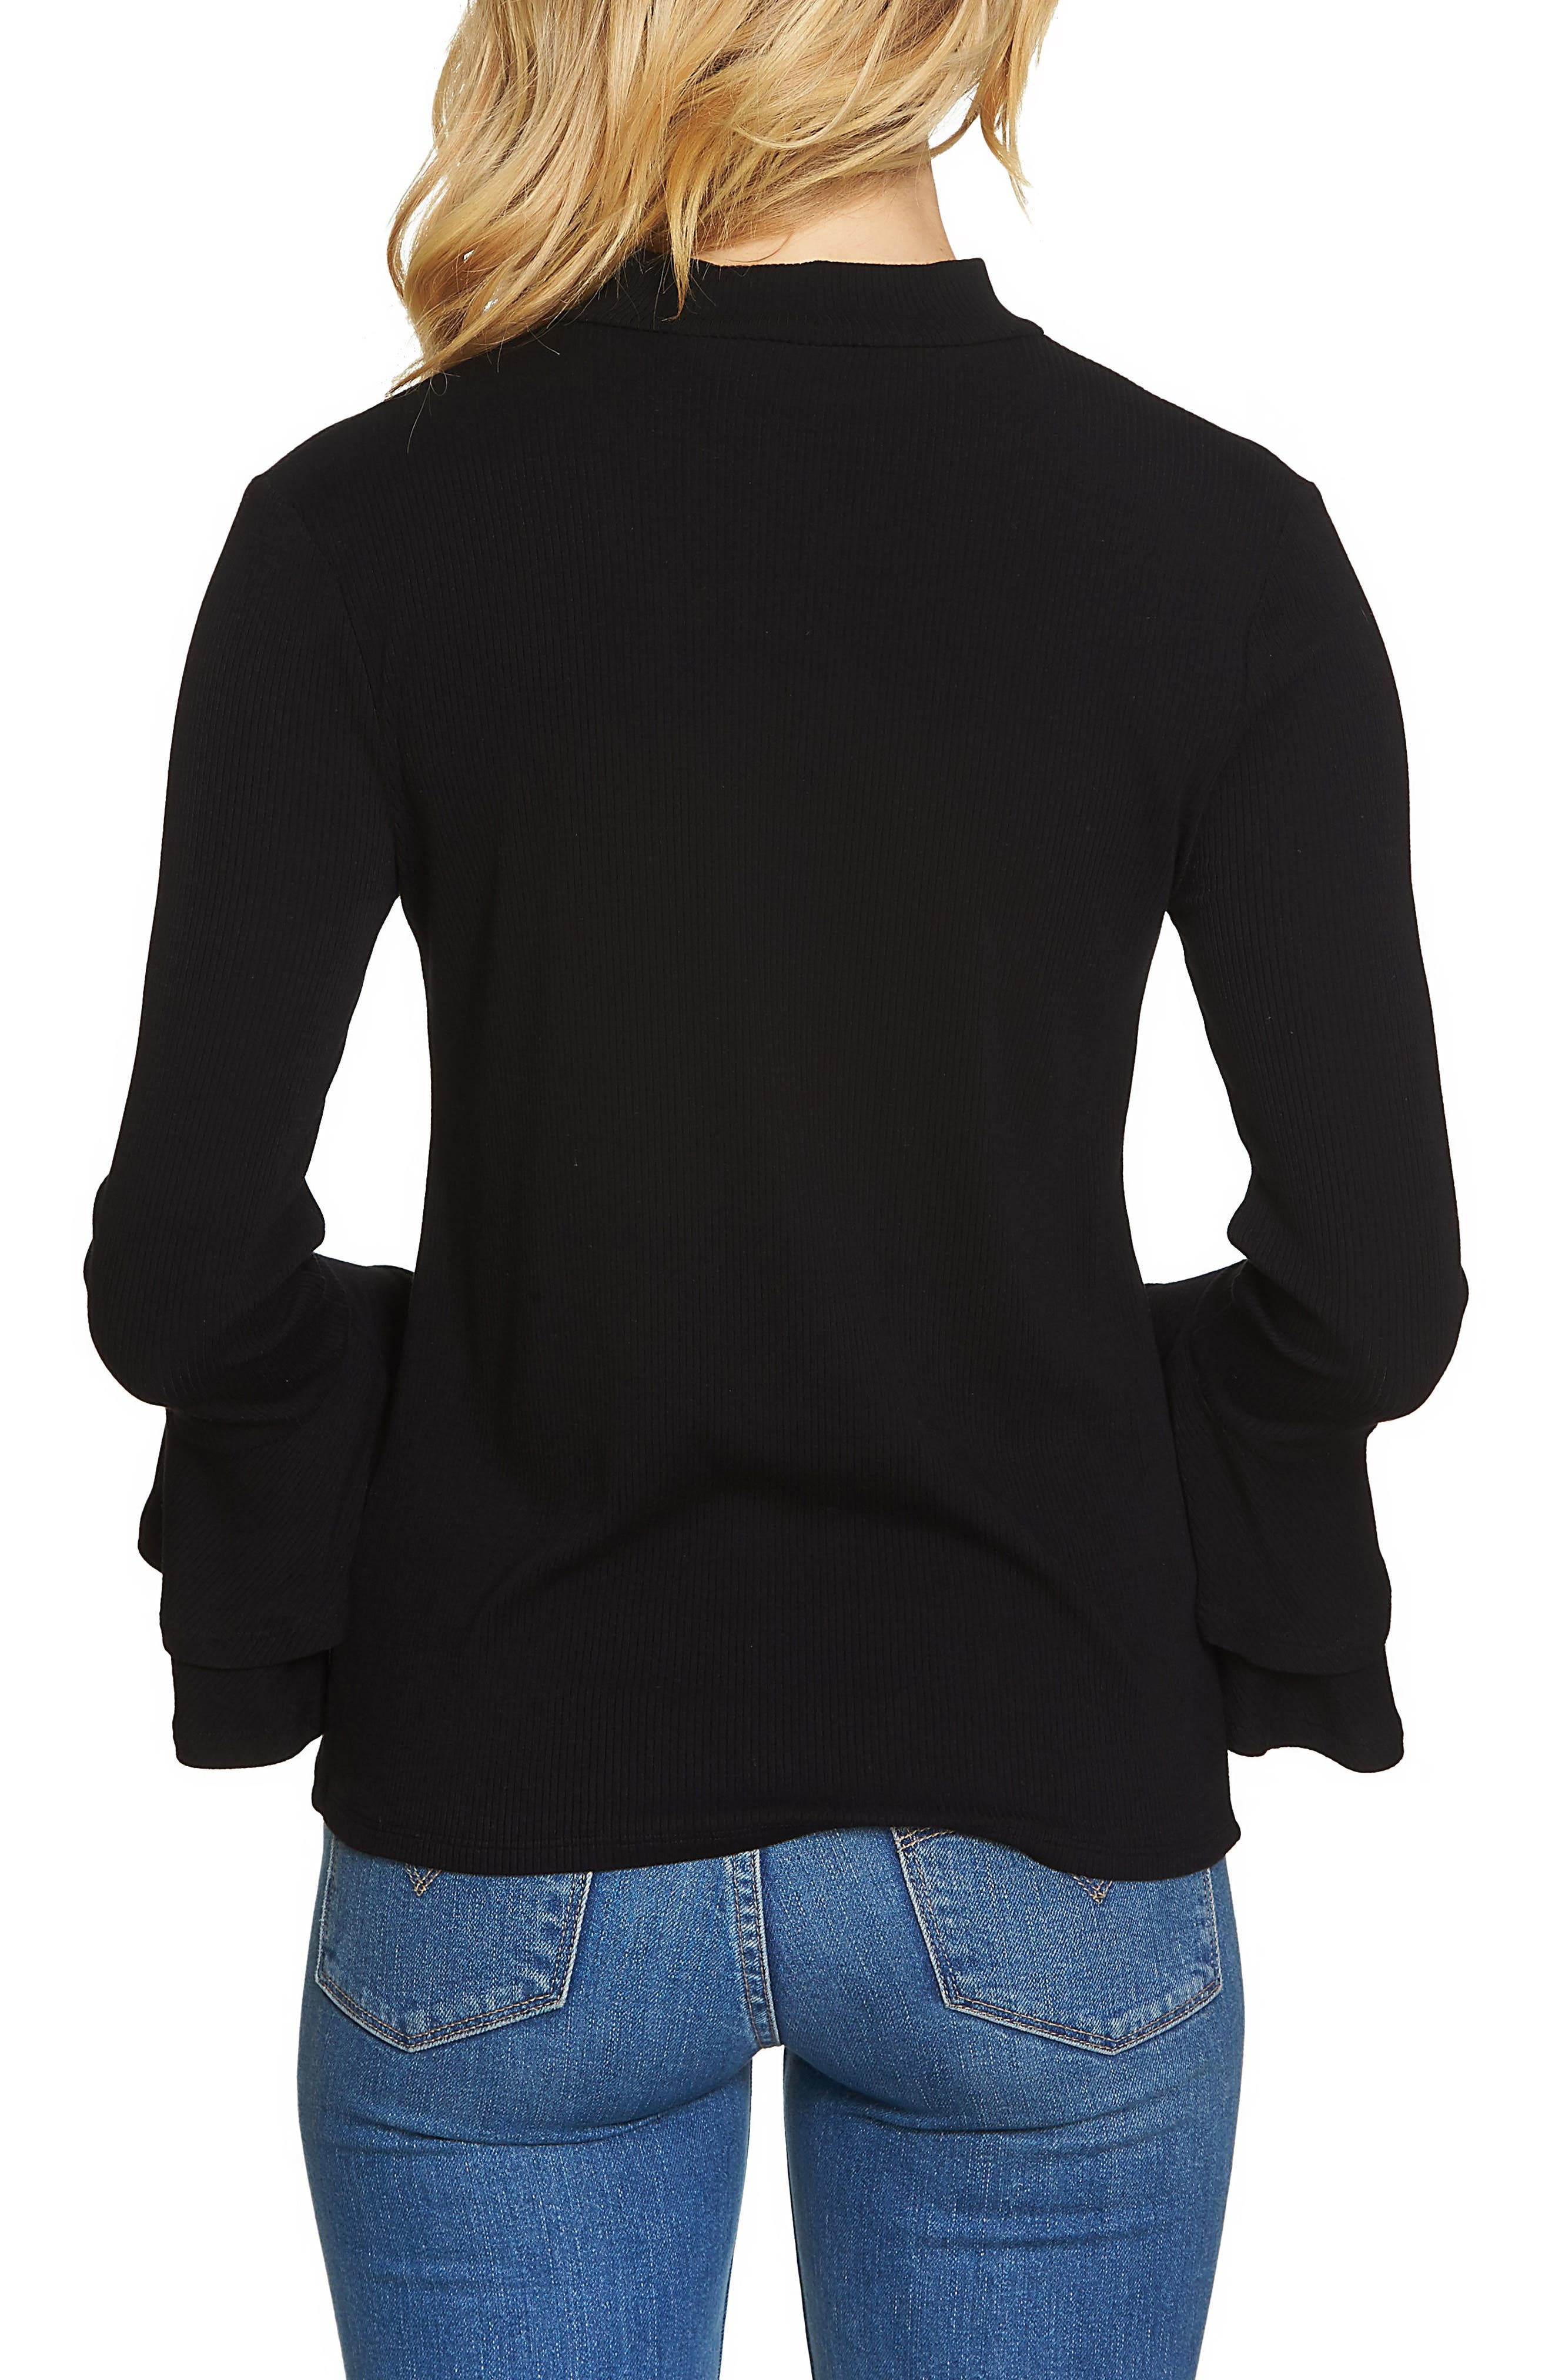 Bell Sleeve Top,                             Alternate thumbnail 2, color,                             010